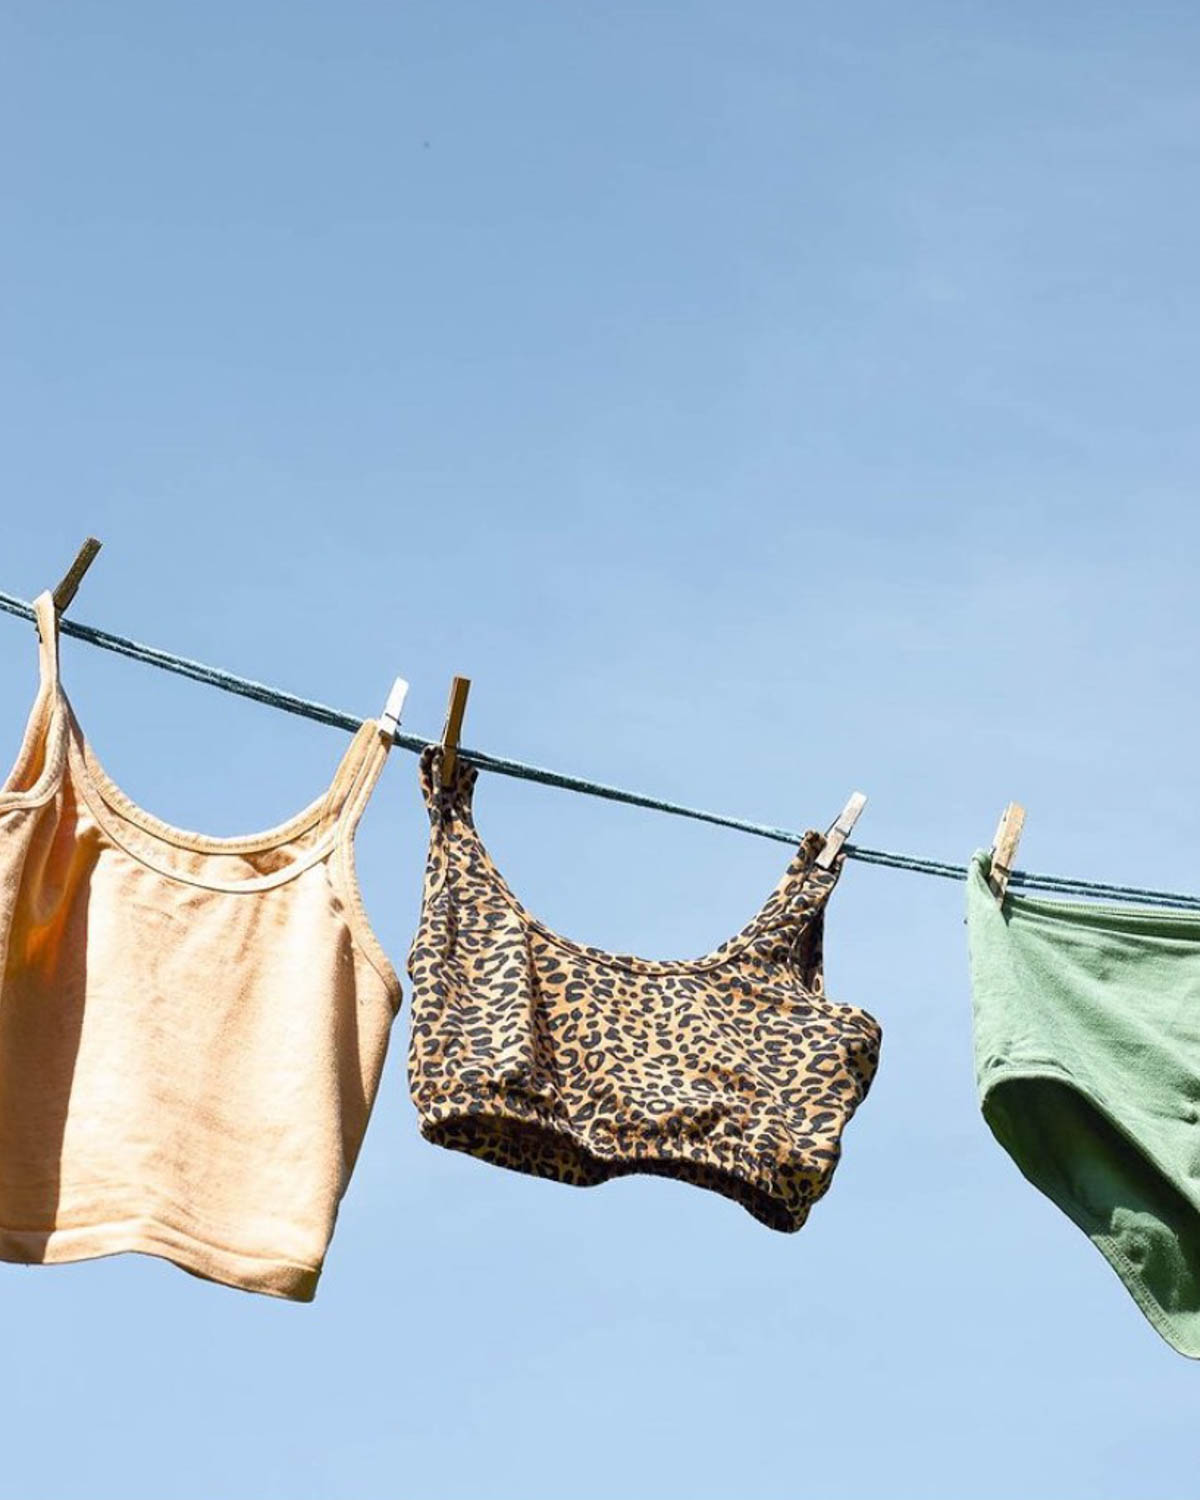 Clothing hanging up on a line against a blue sky